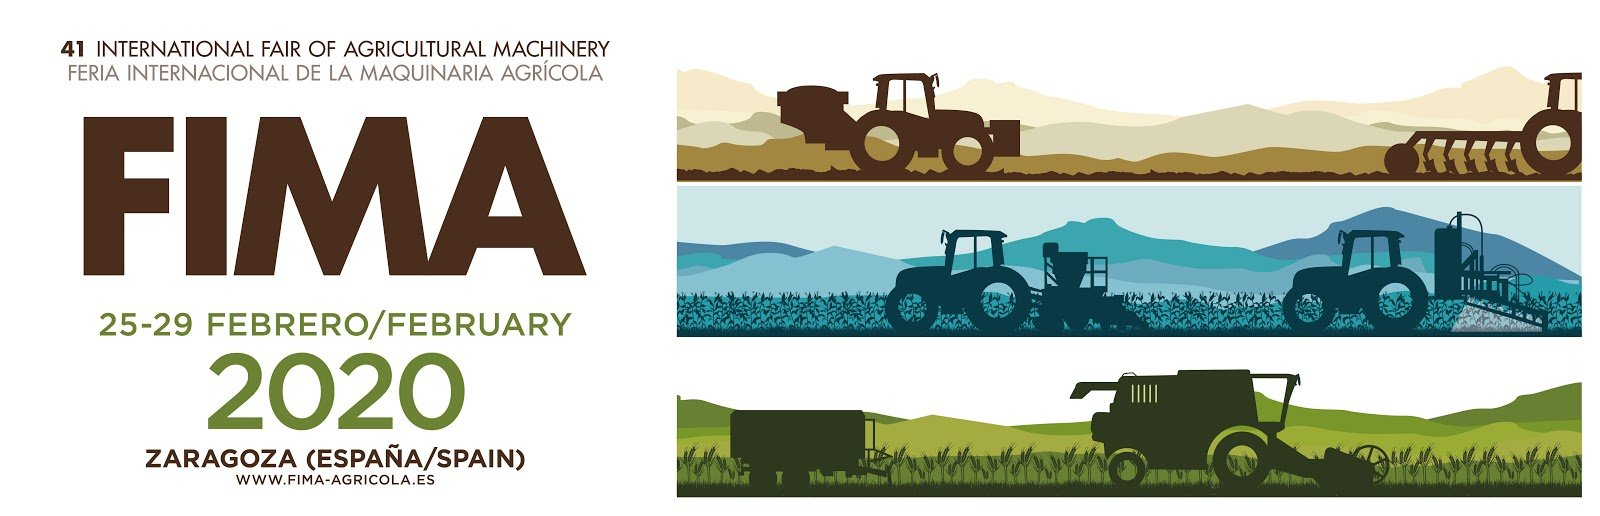 FIMA 2020 - International Fair of Agricultural Machinery in Zaragoza – Spain from 25 th to 29 th